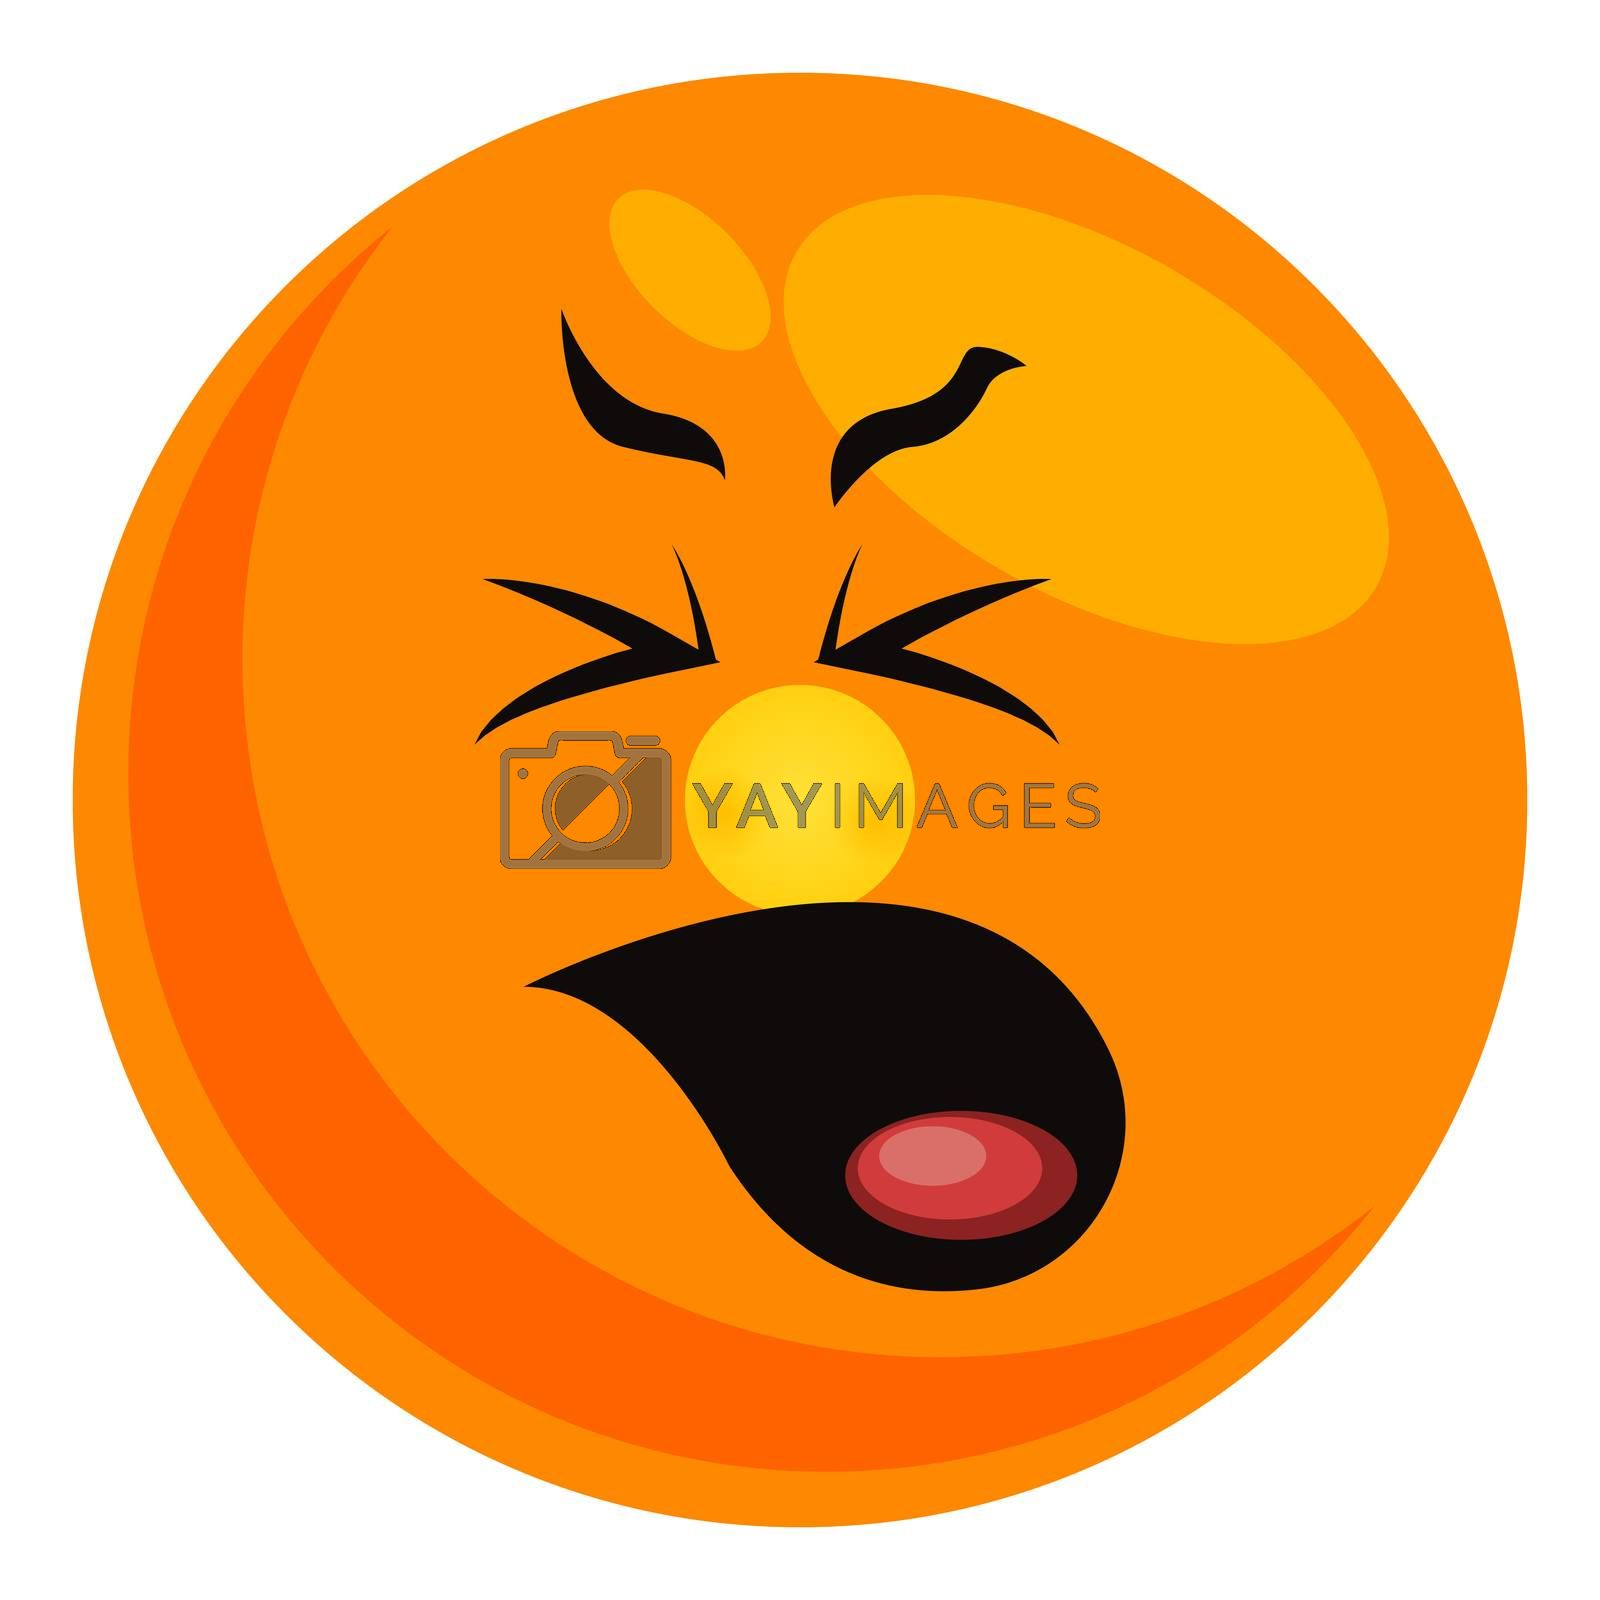 Yawn smiley, illustration, vector on white background